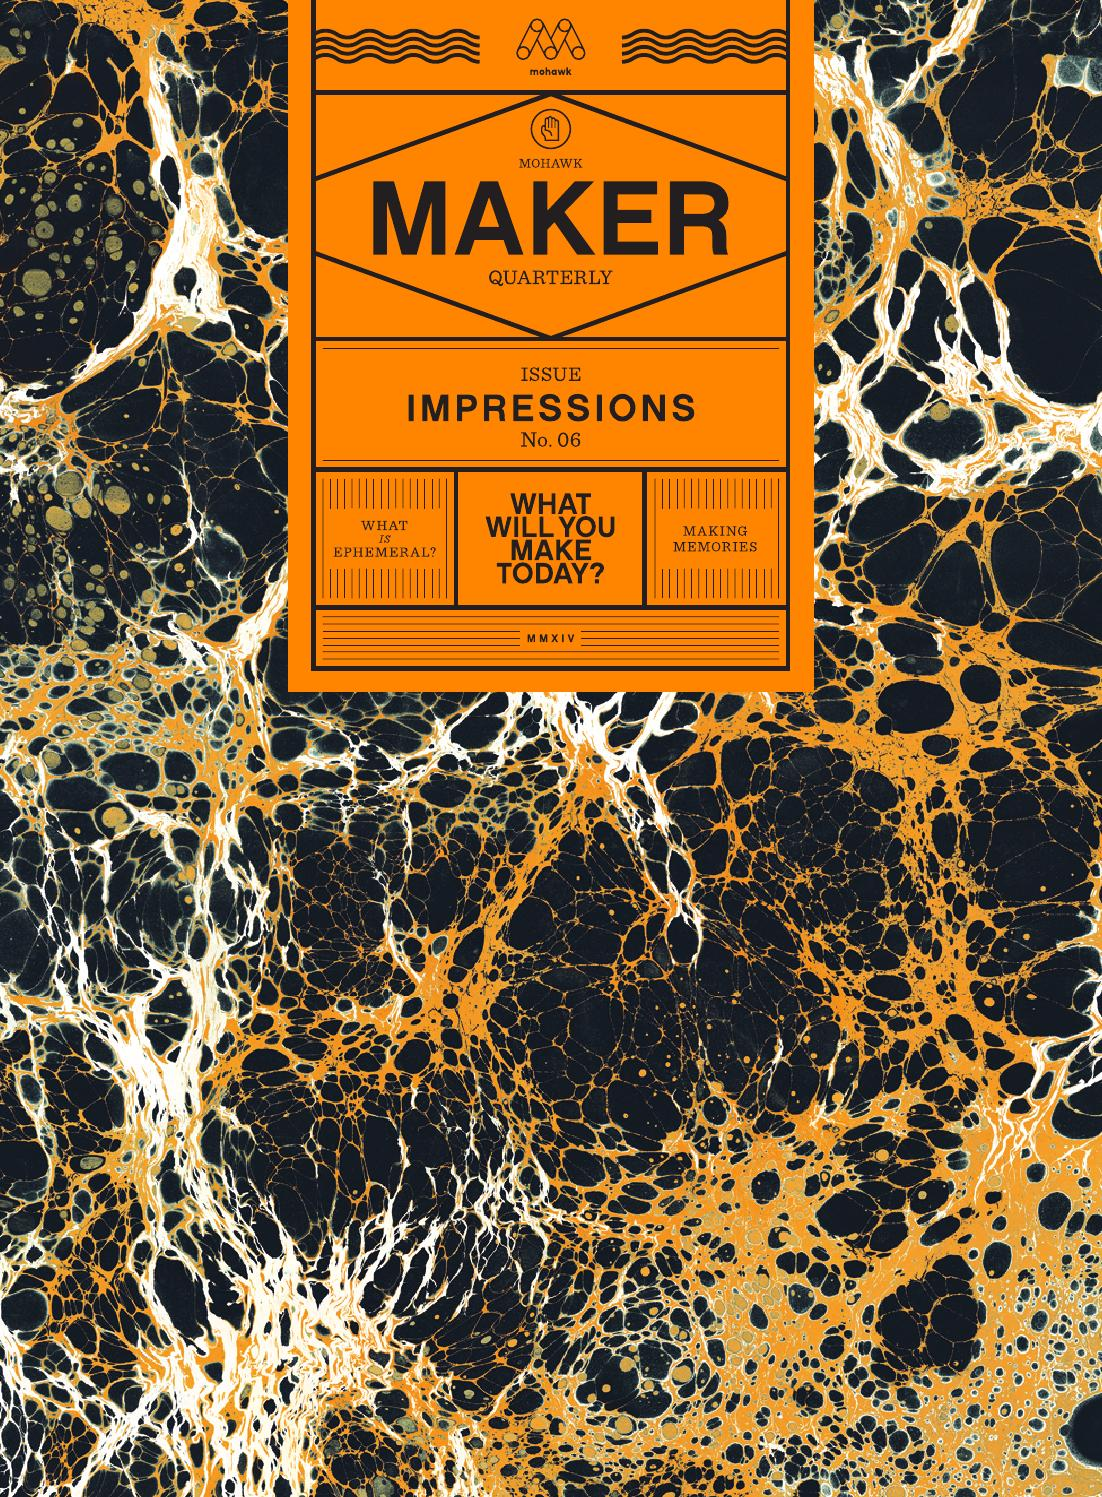 Mohawk maker quarterly issue 6 impressions by mohawk issuu buycottarizona